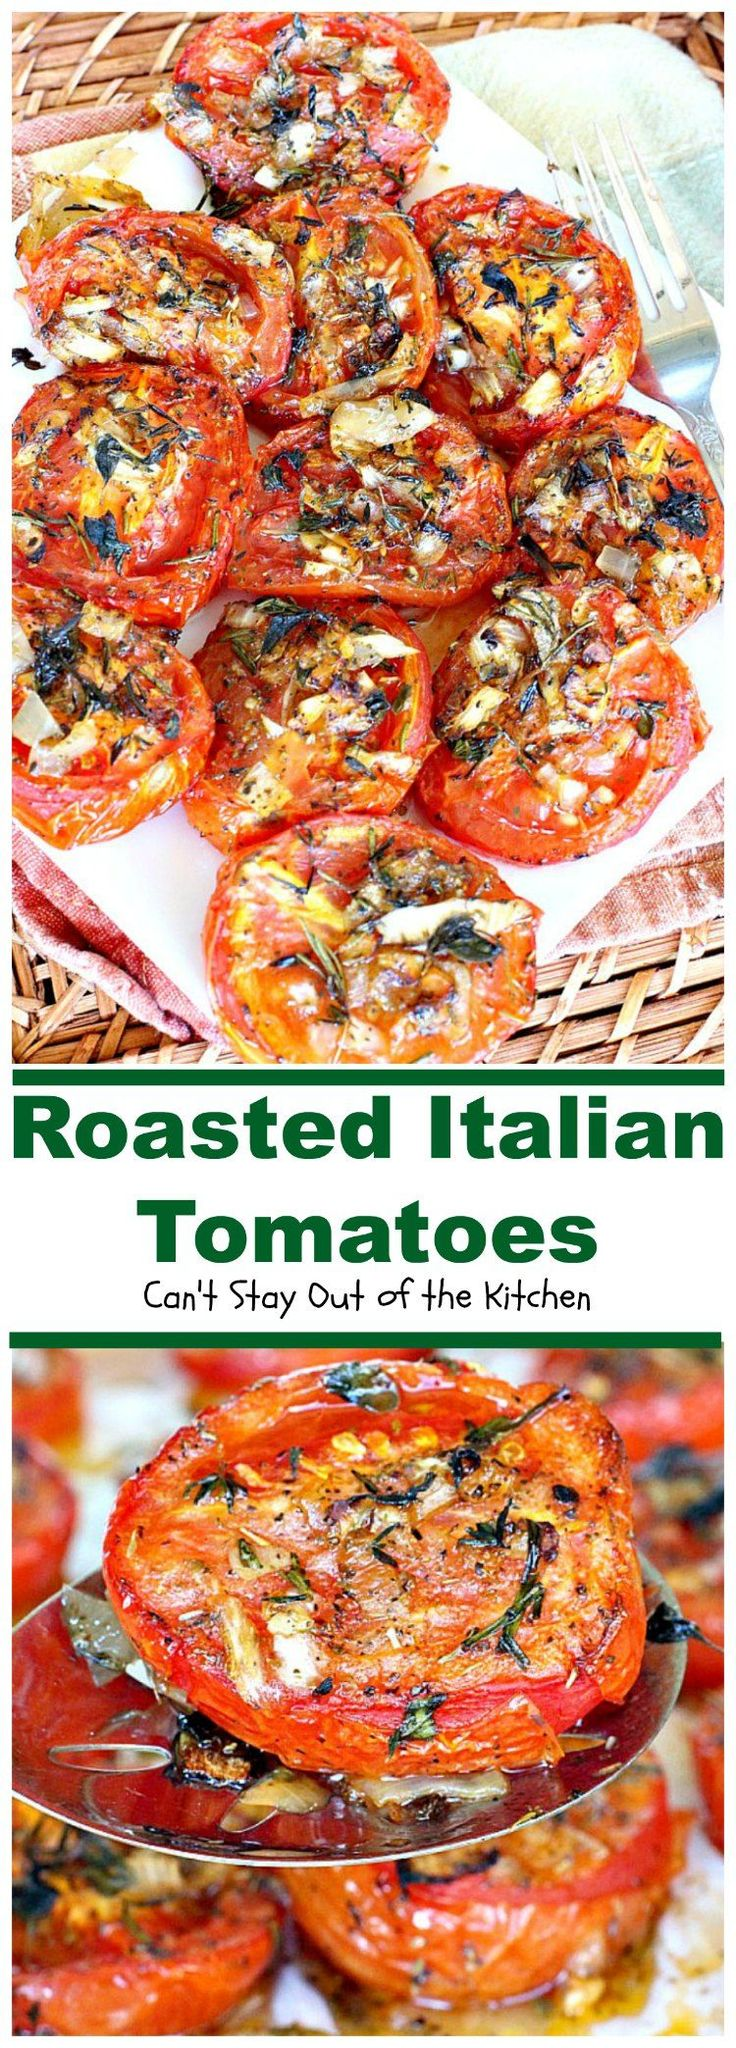 Roasted Italian Tomatoes   Can't Stay Out of the Kitchen   these tomatoes are heavenly. You won't want to make them any other way after trying these! Great for a holiday sidedish too.